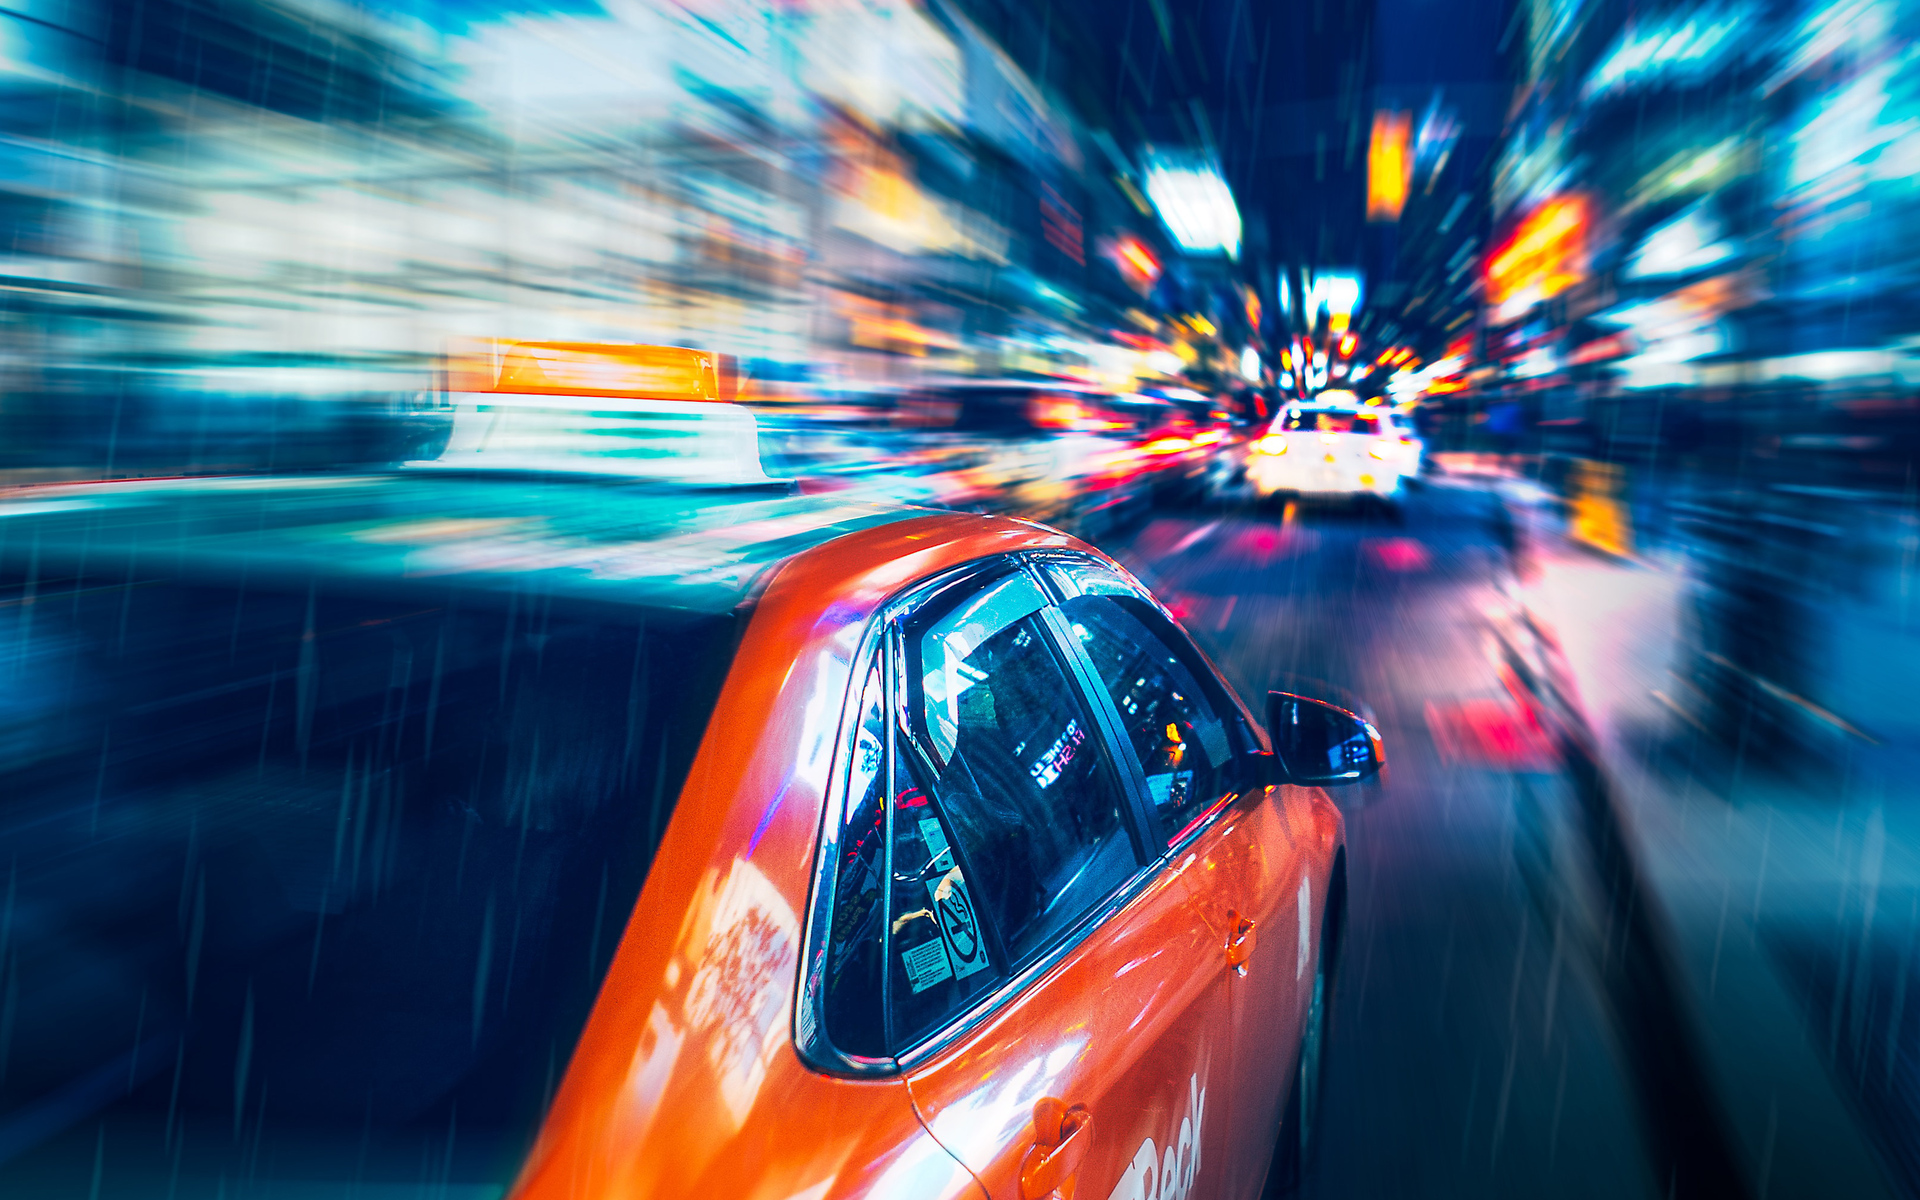 time-lapse-road-vehicles-photography-4k-gy.jpg